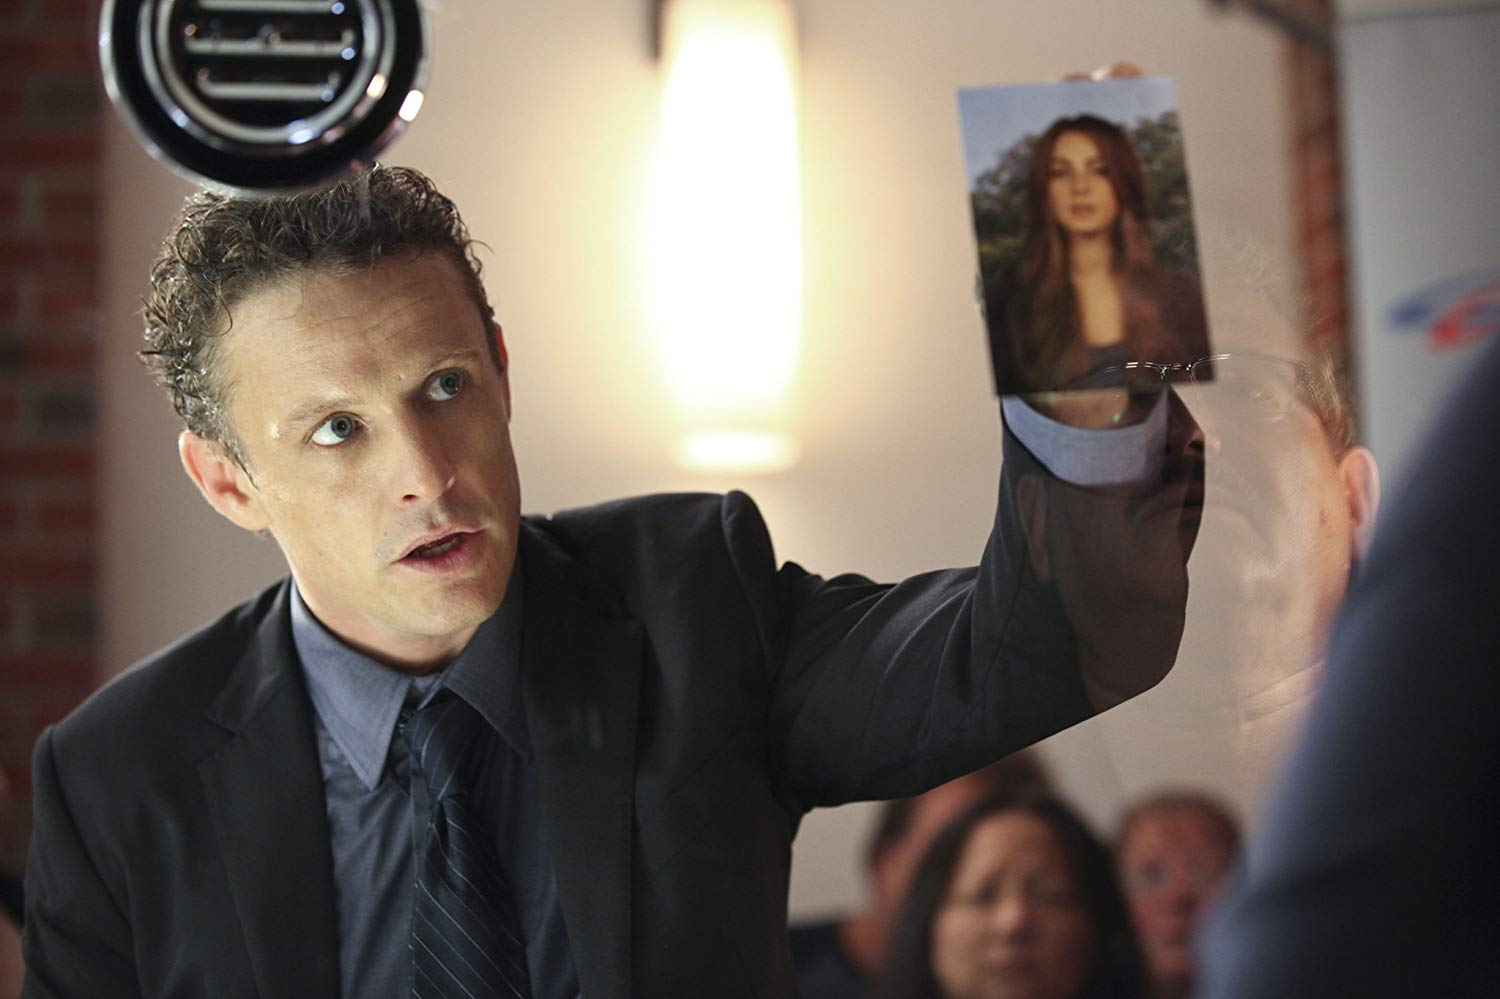 David Lyons as the pursuing psycho cop ex-husband in Safe Haven (2013)